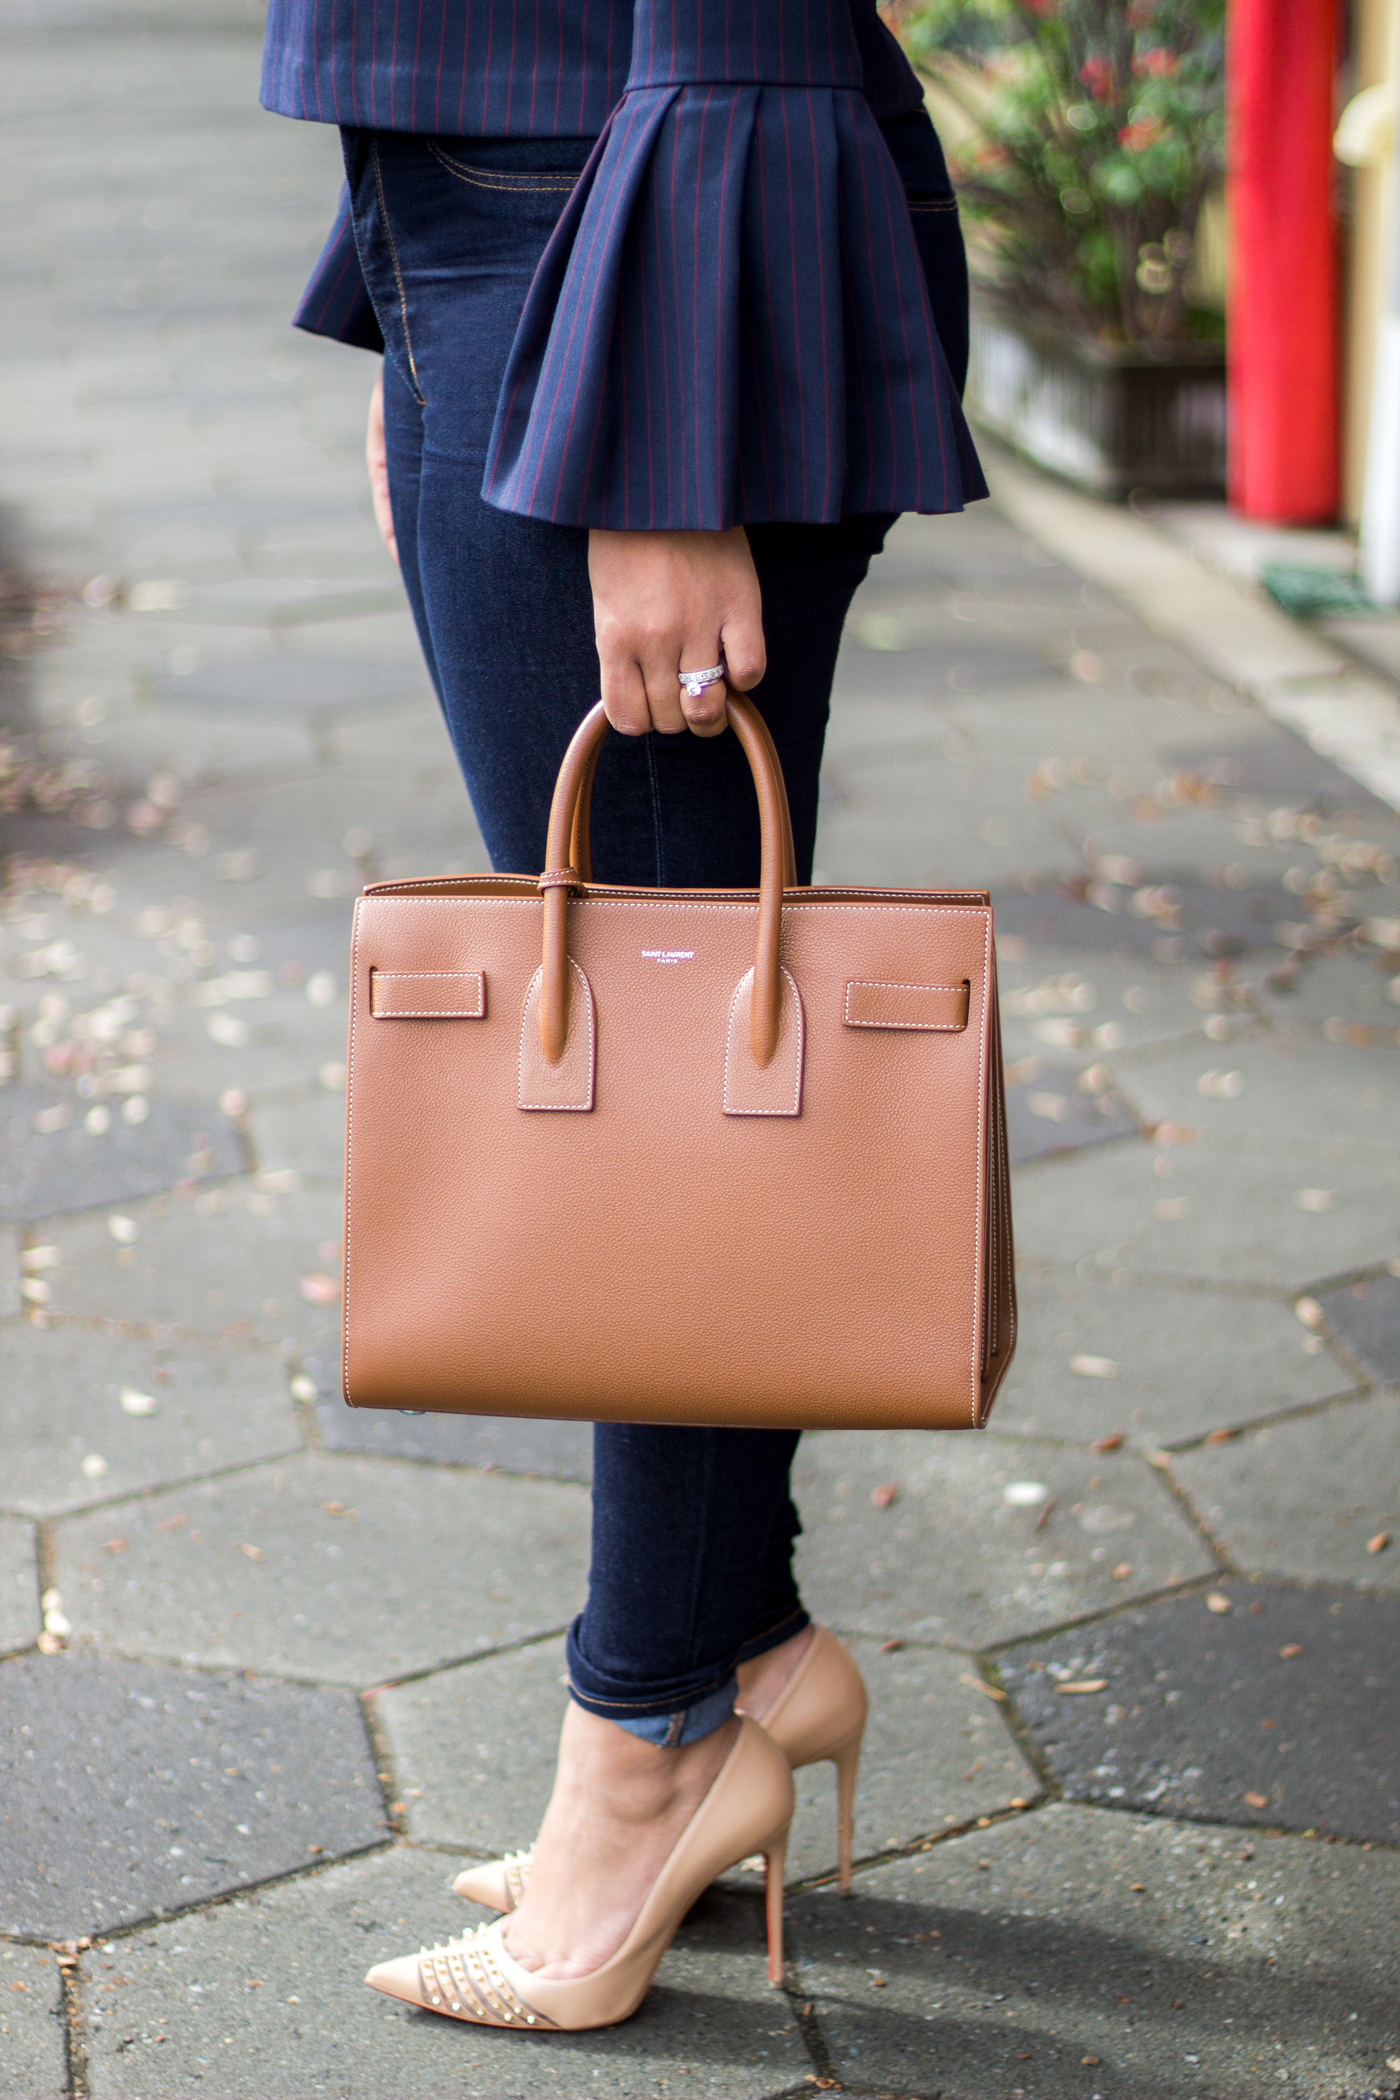 saint-laurent-taupe-sac-de-jour-bag